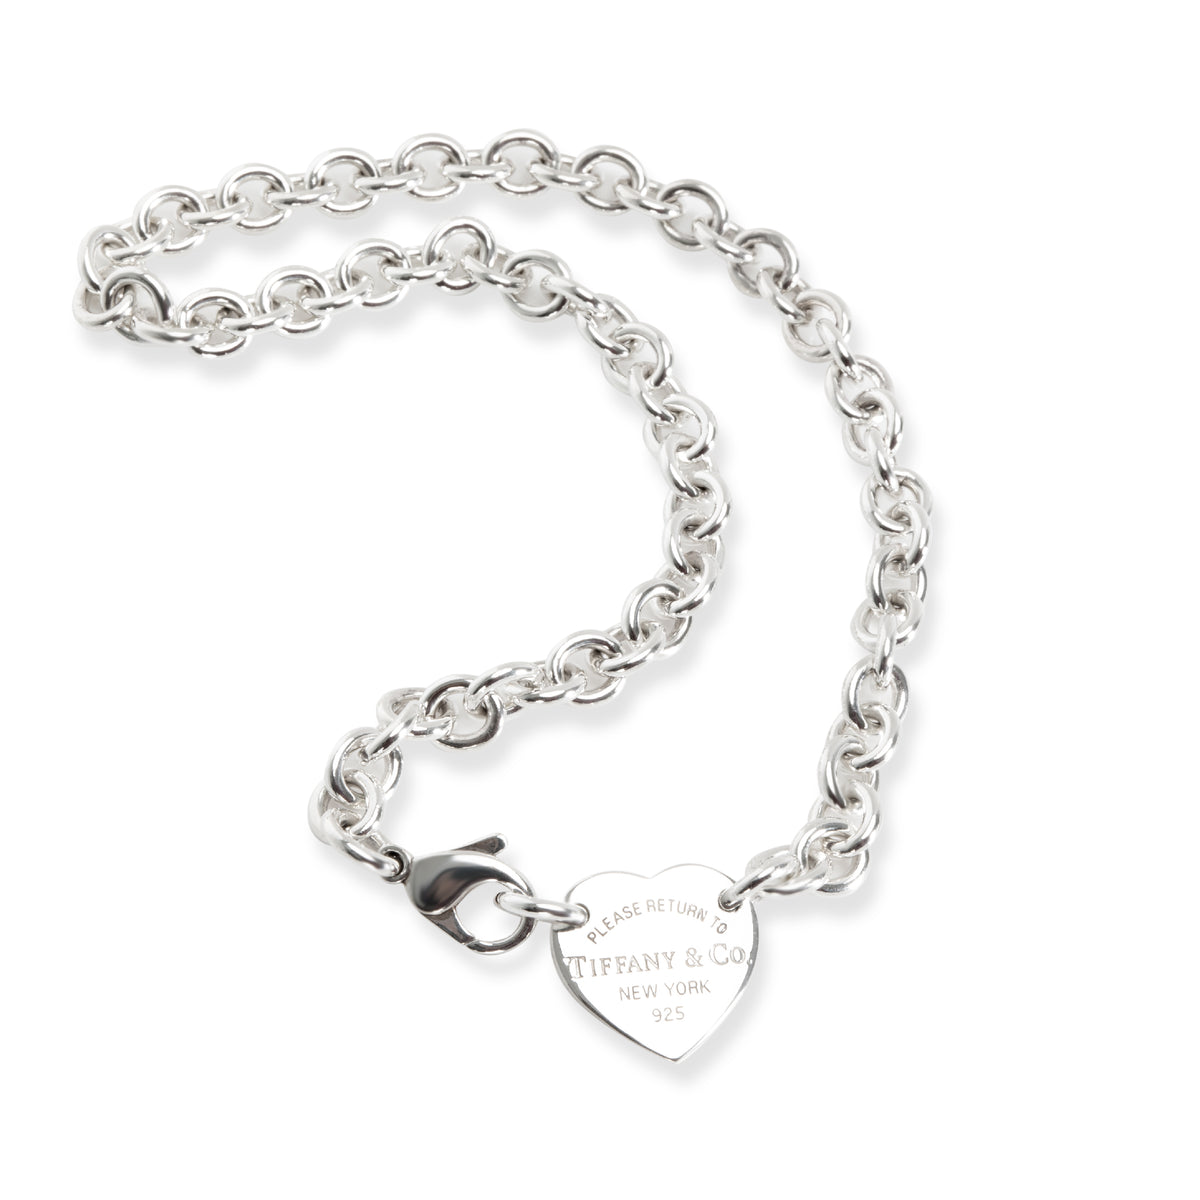 Tiffany & Co. Heart Tag Choker Necklace in  Sterling Silver